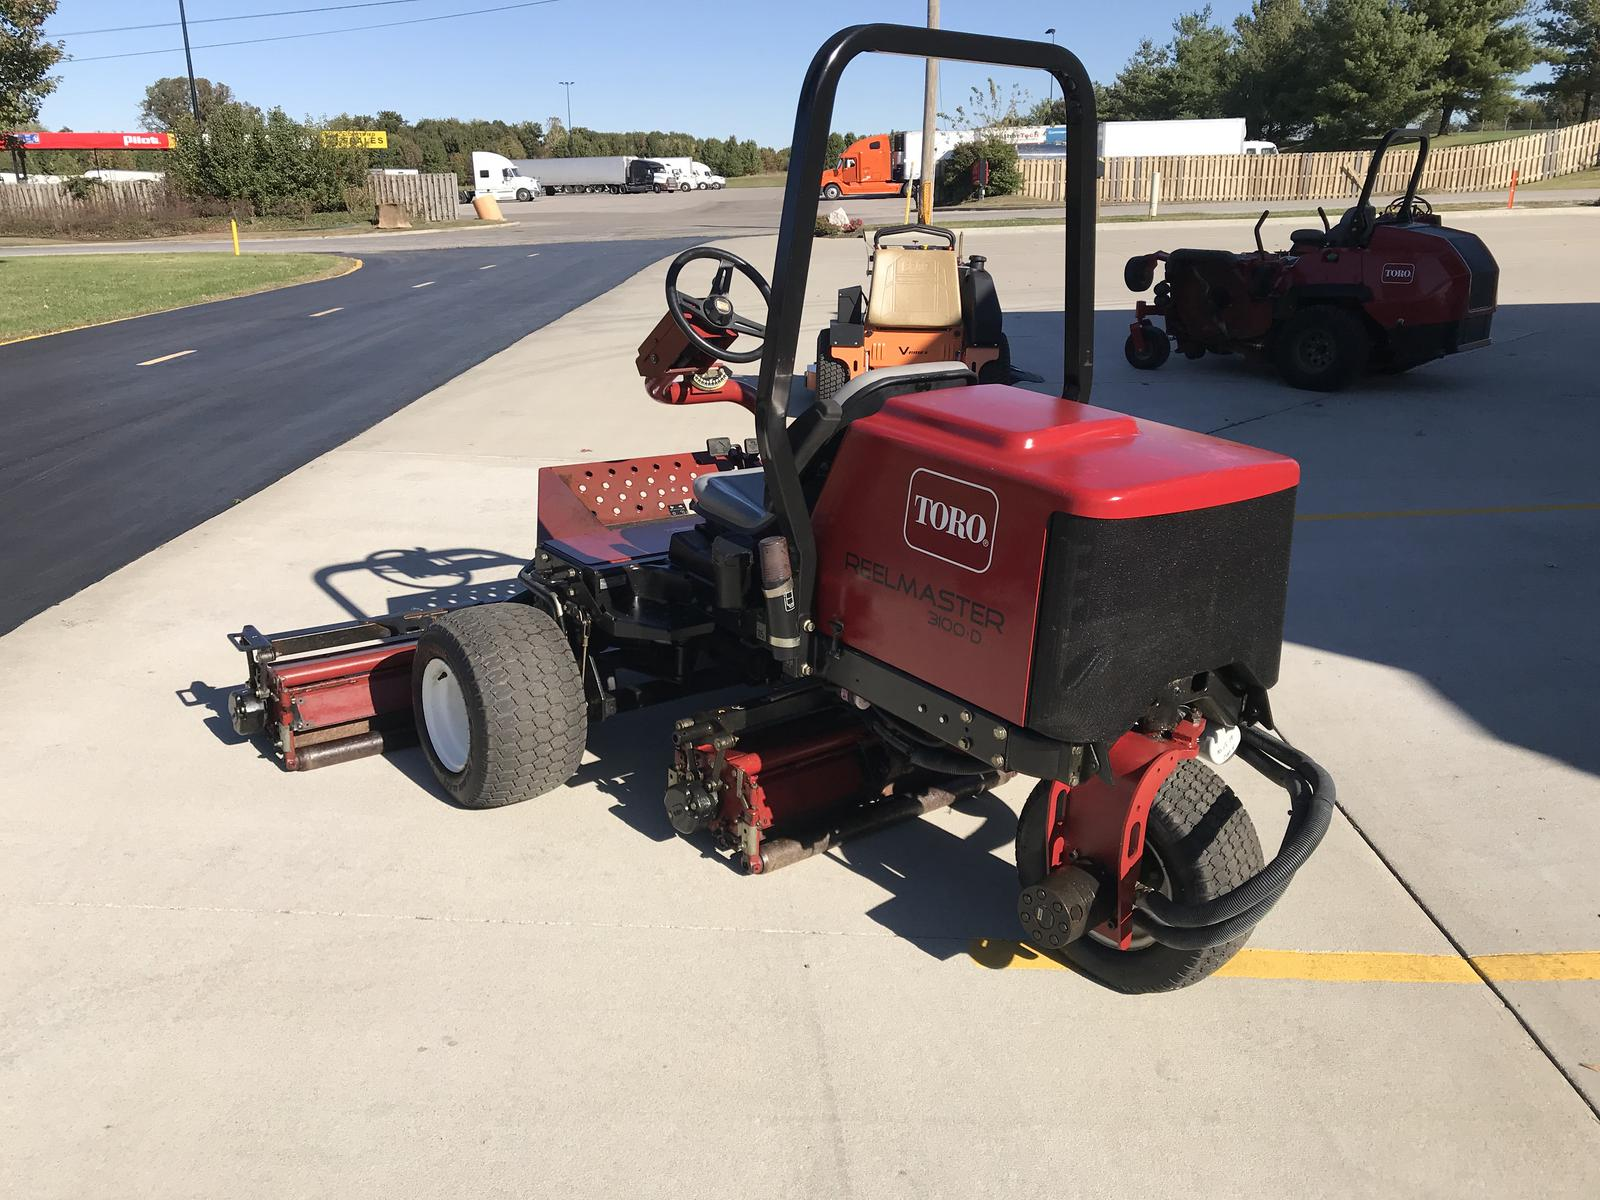 Toro Reelmaster 3100 D Sidewinder For Sale In Haubstadt